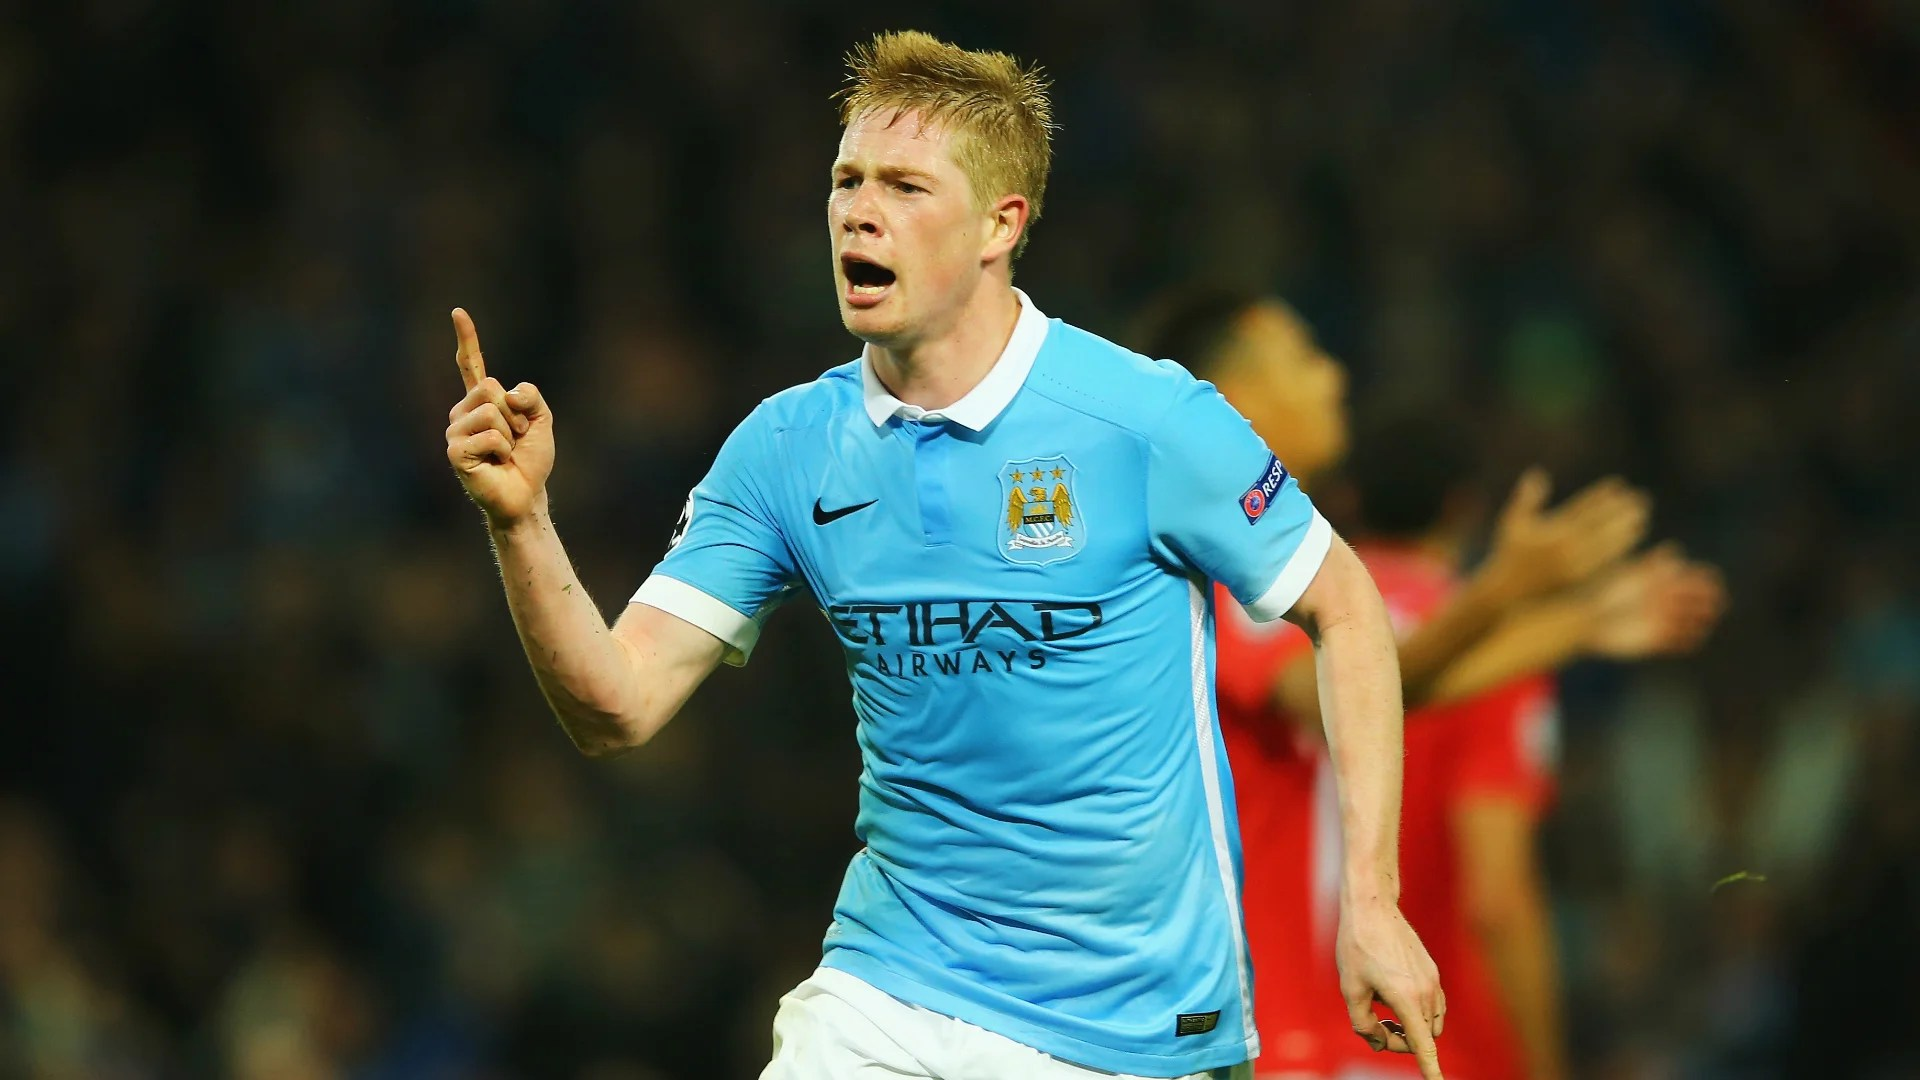 Man City De Bruyne Devrait Prolonger